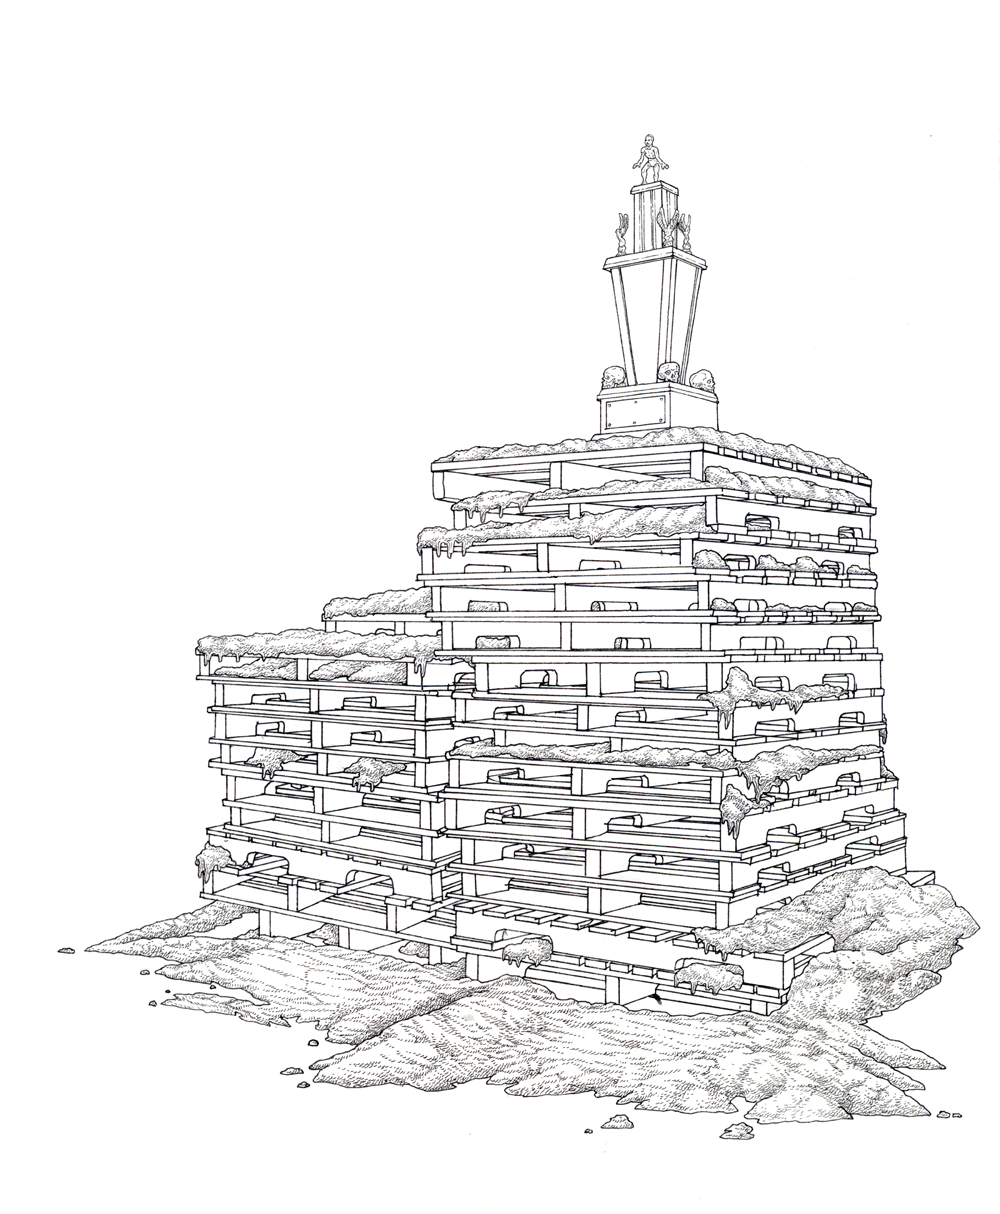 stacked pallets , ink on paper, 8.5in. x 7in., 2009